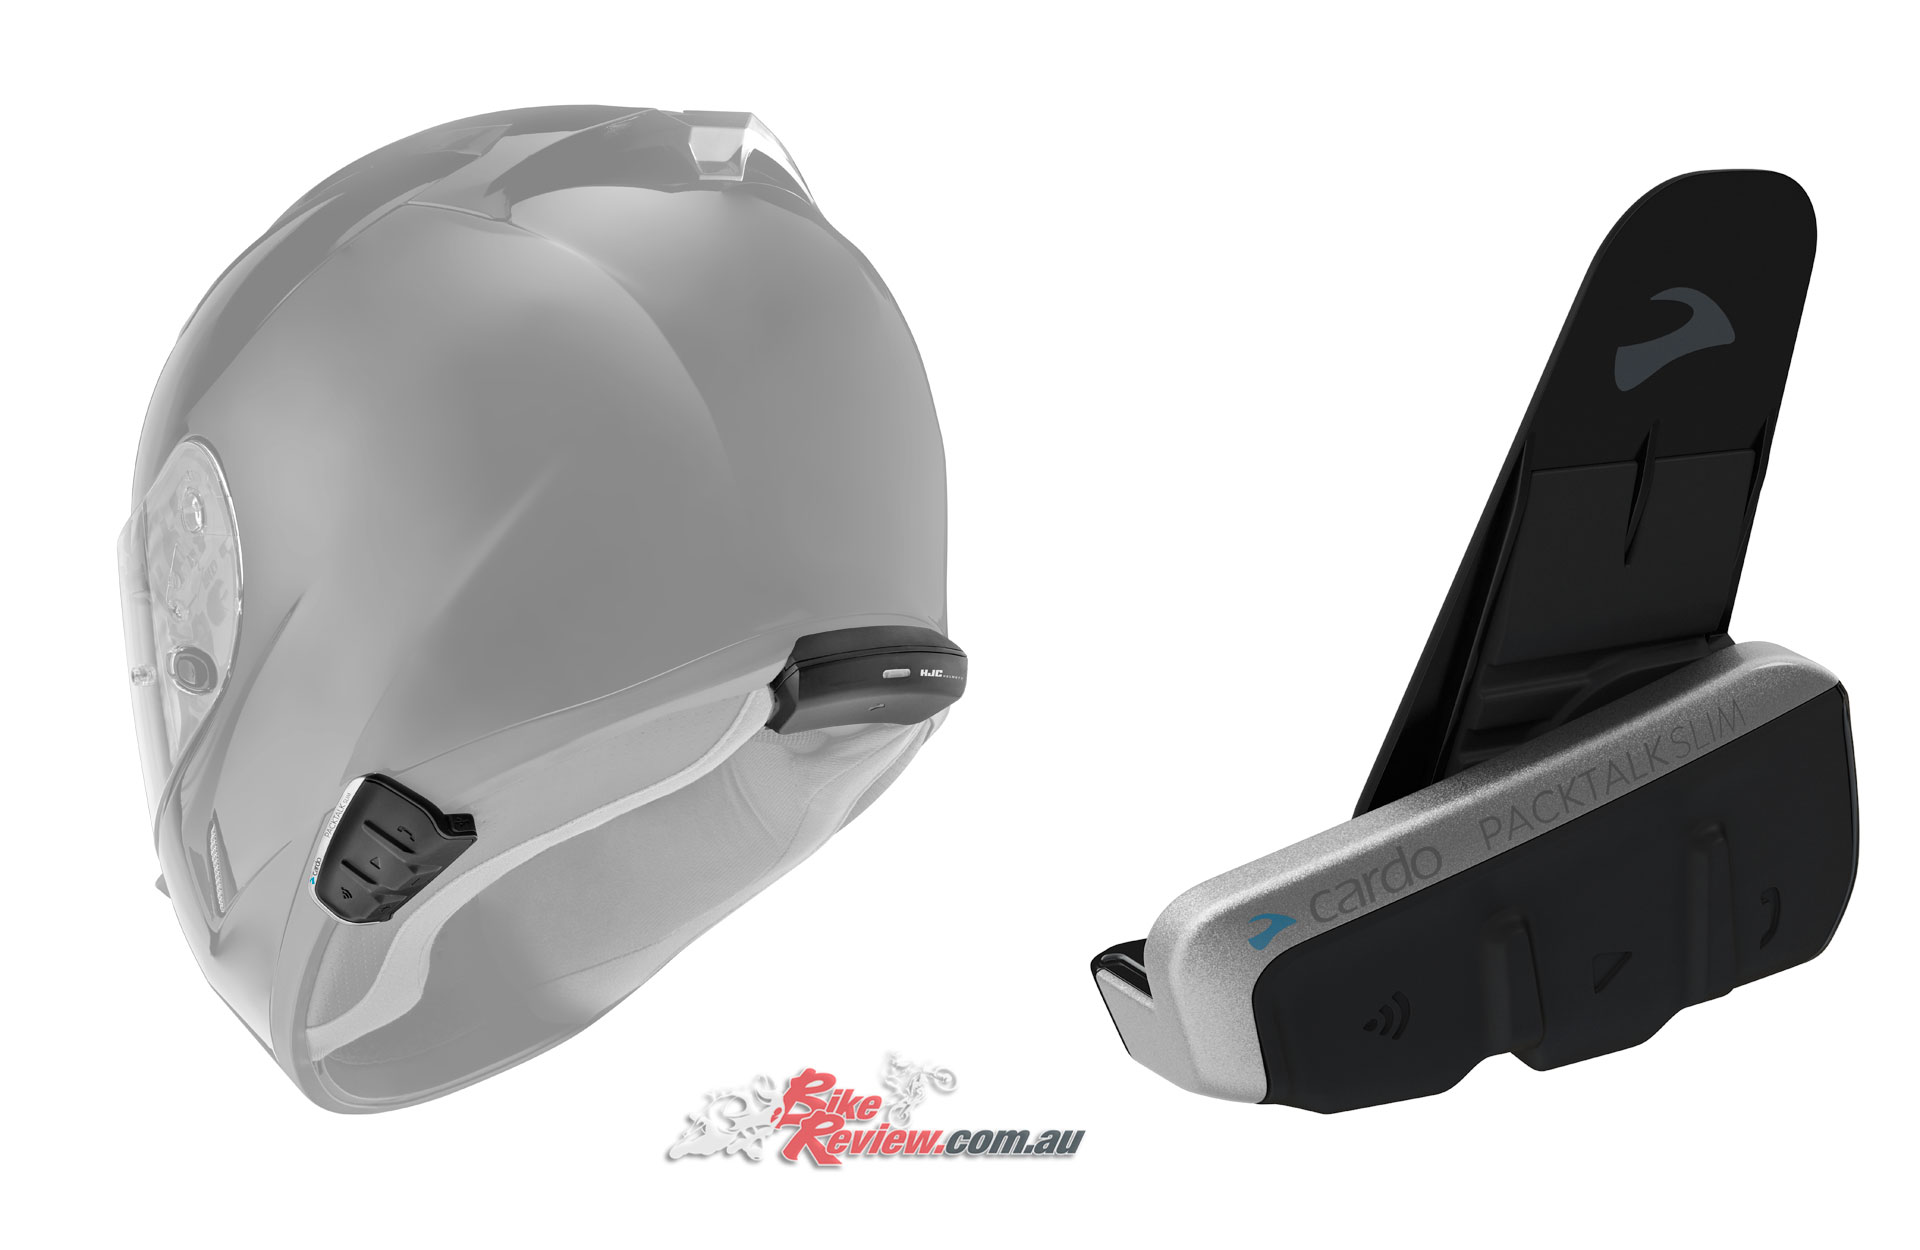 The Cardo Packtalk Slim offers the lowest profile option, with the premium features